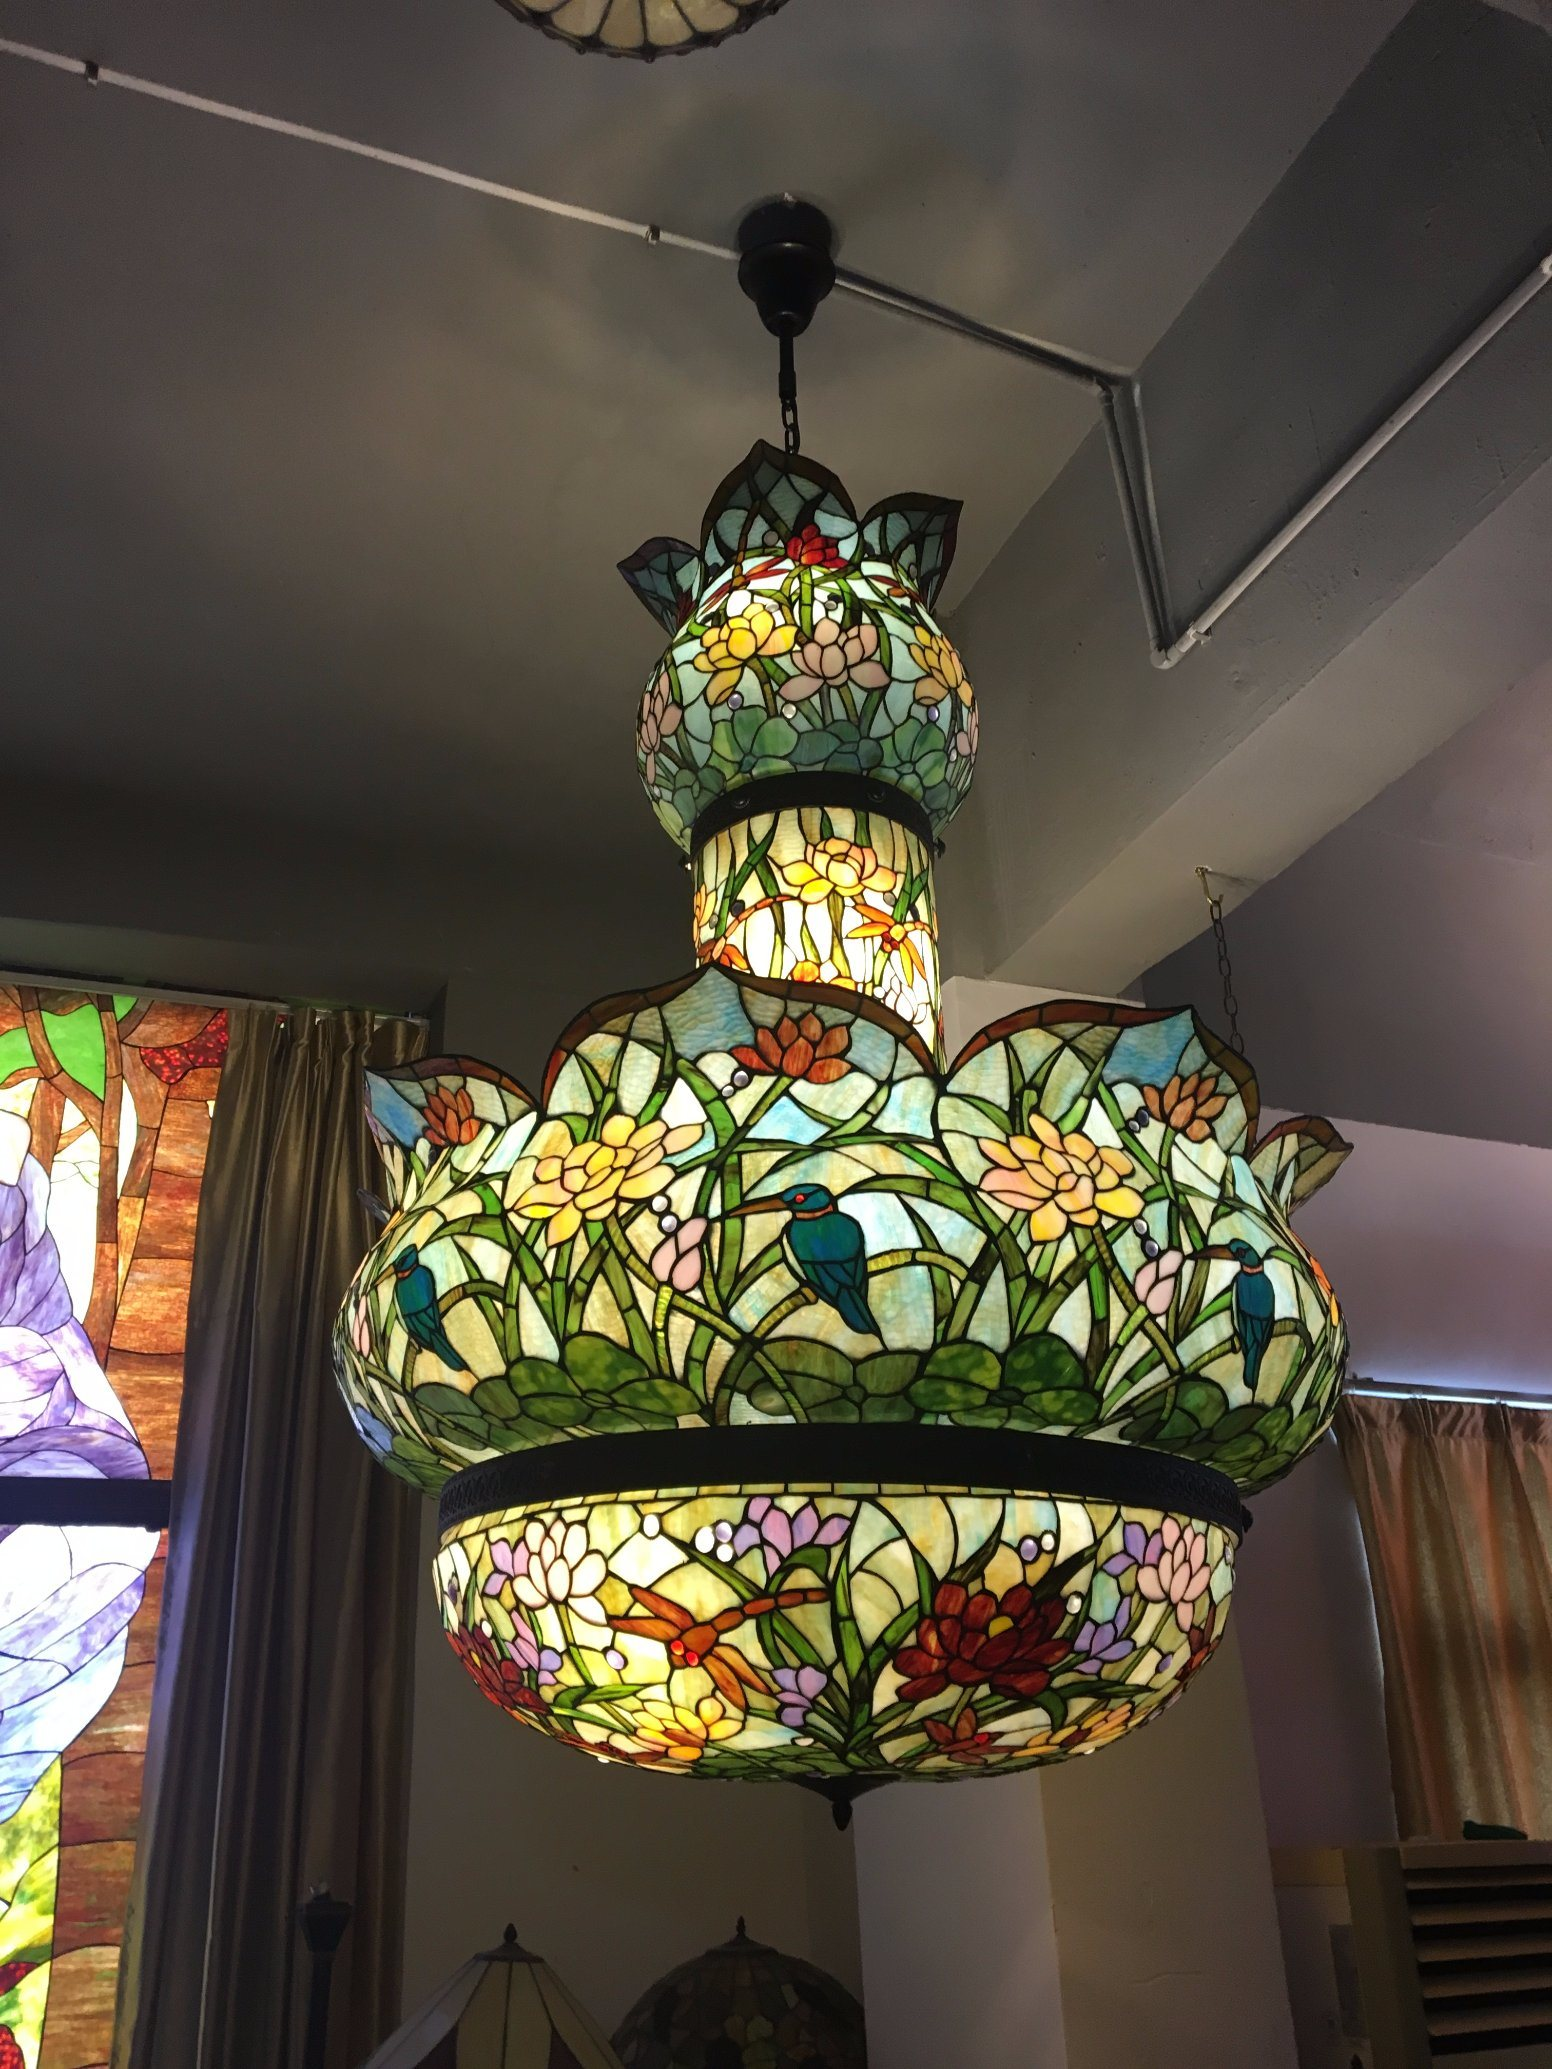 Vintage Handmade Stained Glass Hotel Decorative Pendant Lamp Tiffany Lamp China Tiffany Lamp Table Lamp Made In China Com